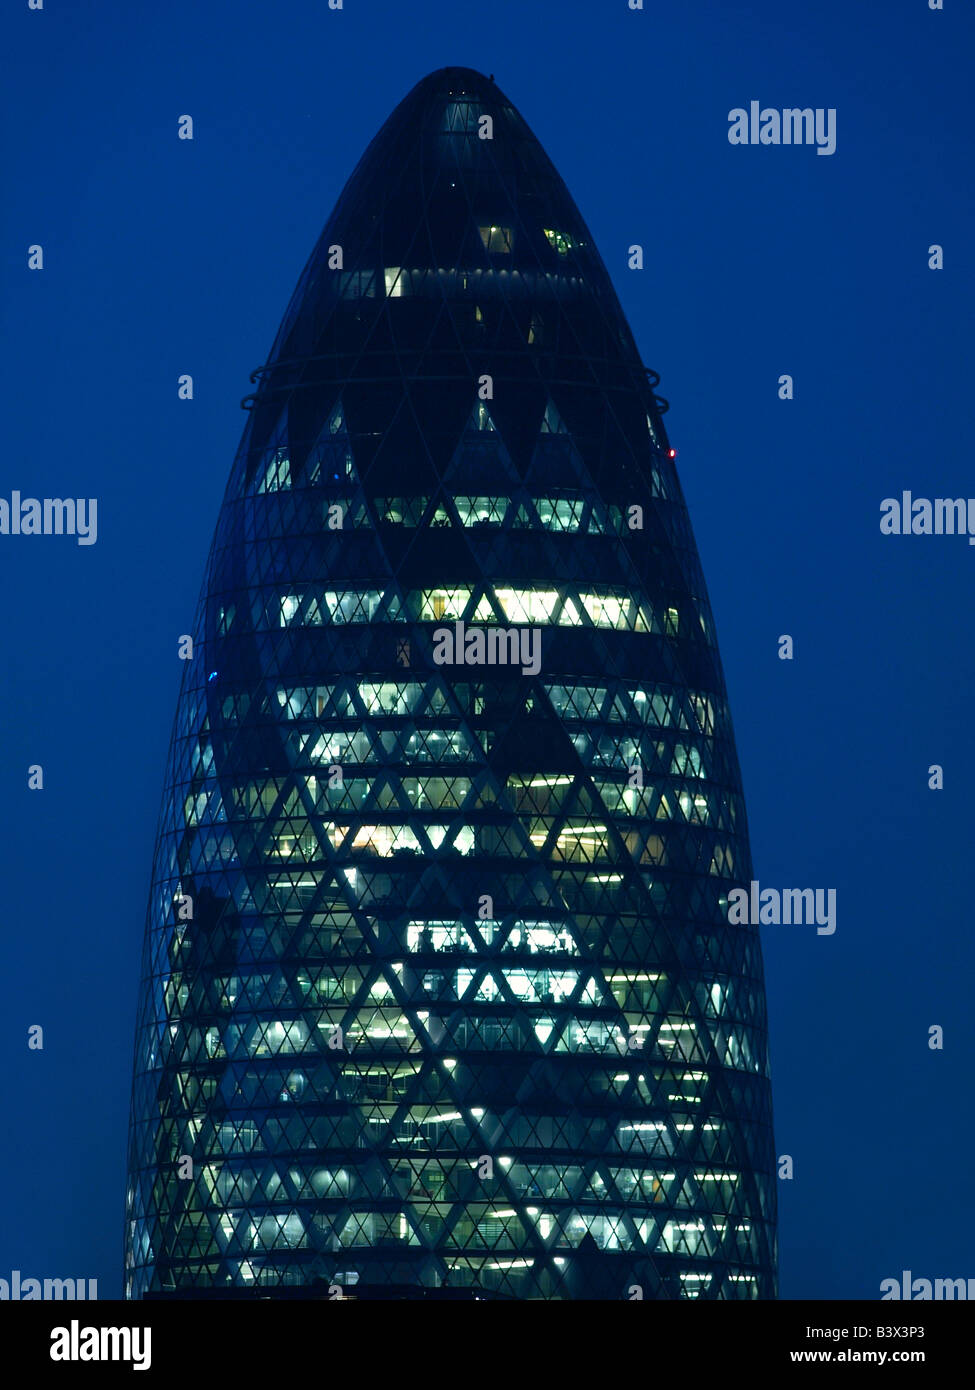 The Gherkin Swiss reinsurance building at night London UK - Stock Image